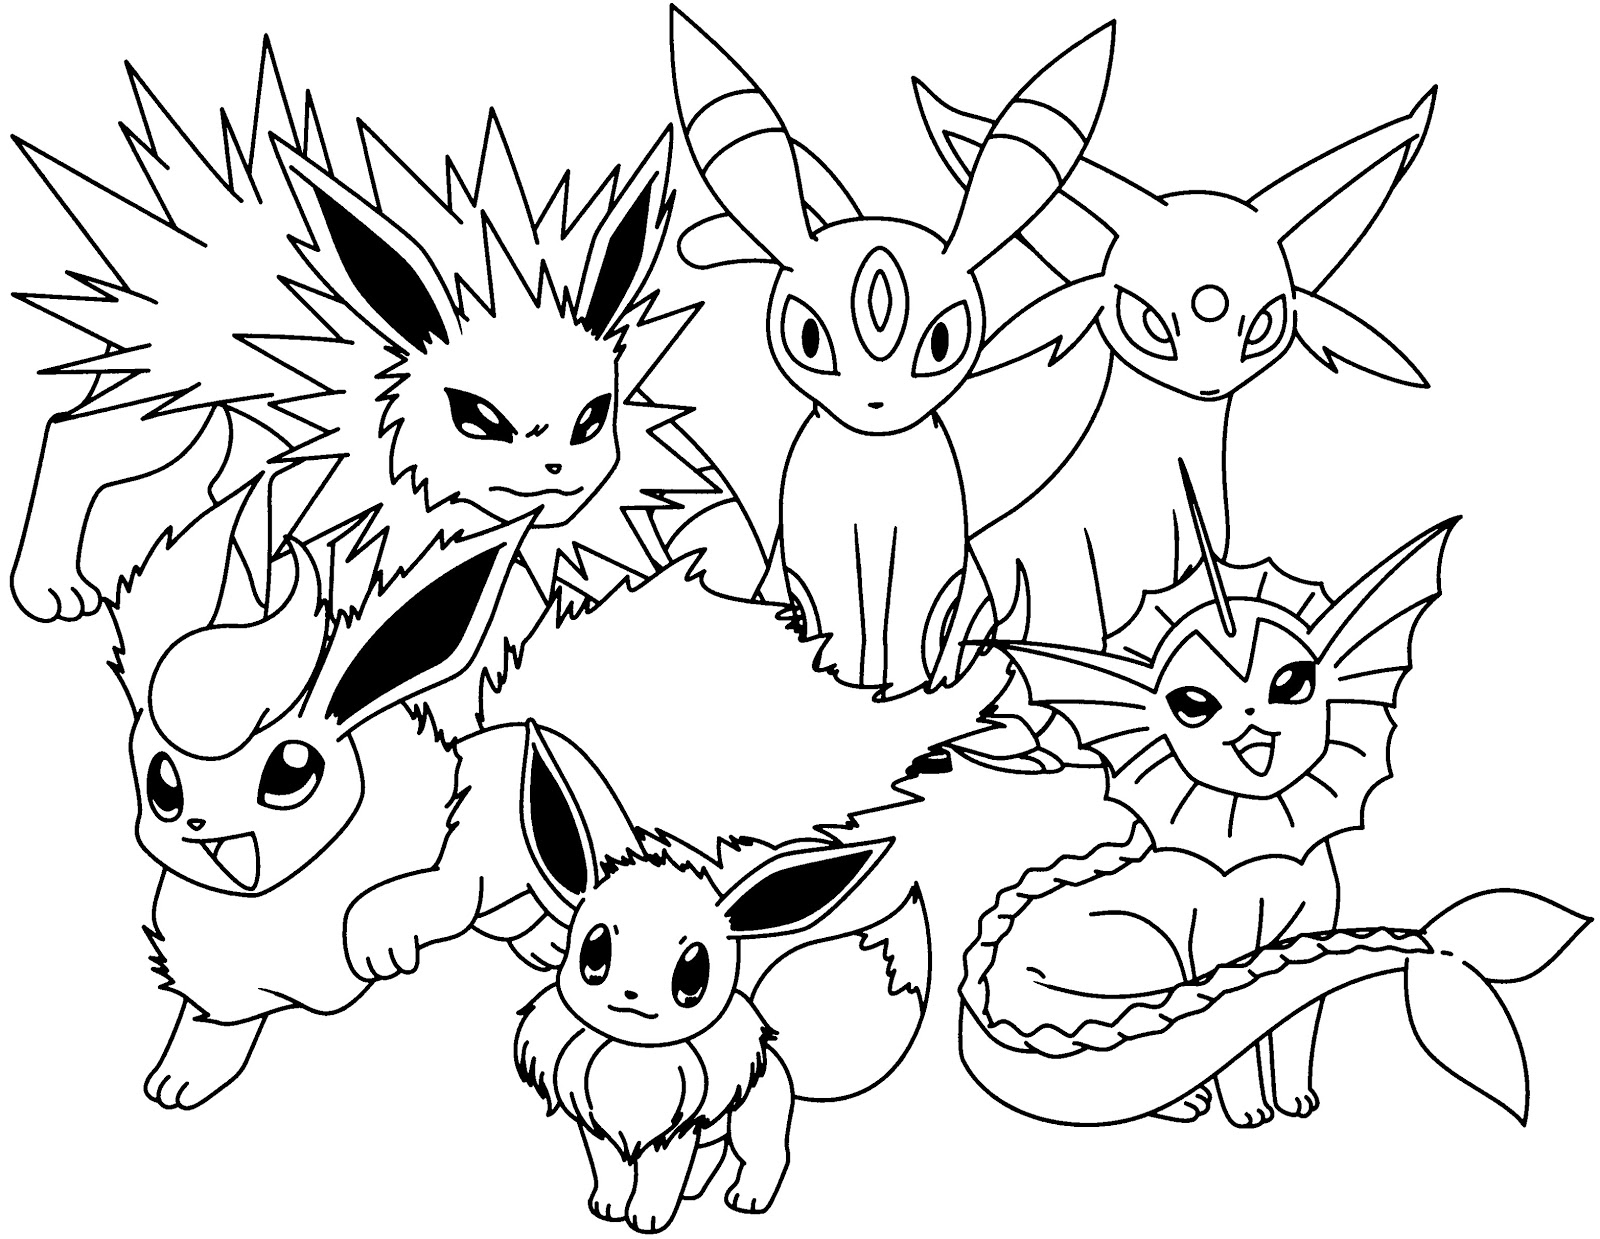 eevee coloring sheets eevee coloring pages to download and print for free eevee sheets coloring